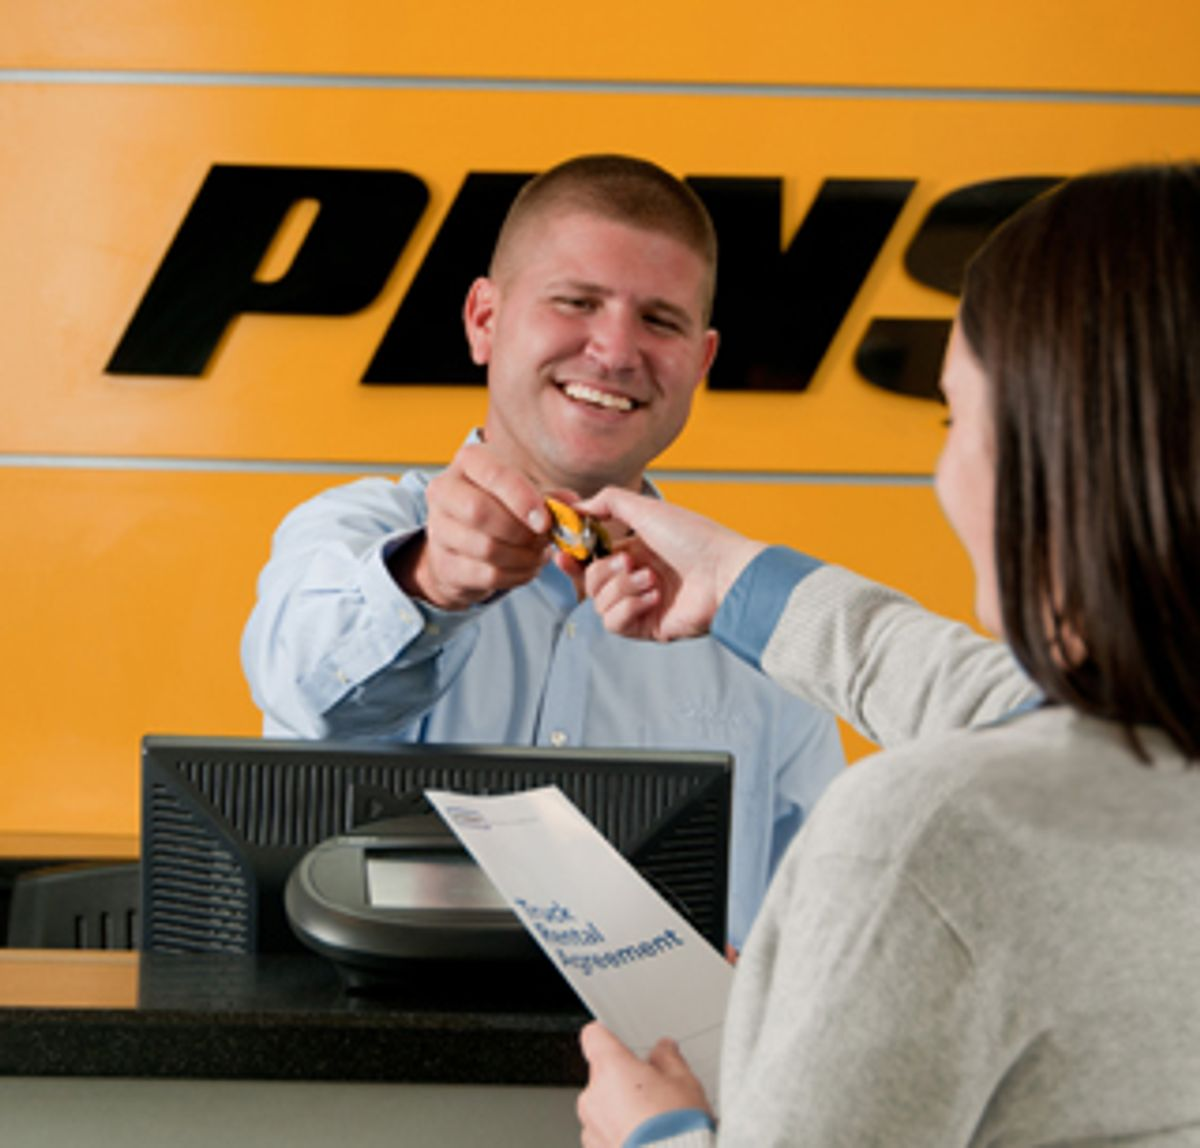 Penske Recruiting in Wilkes-Barre, Pa.